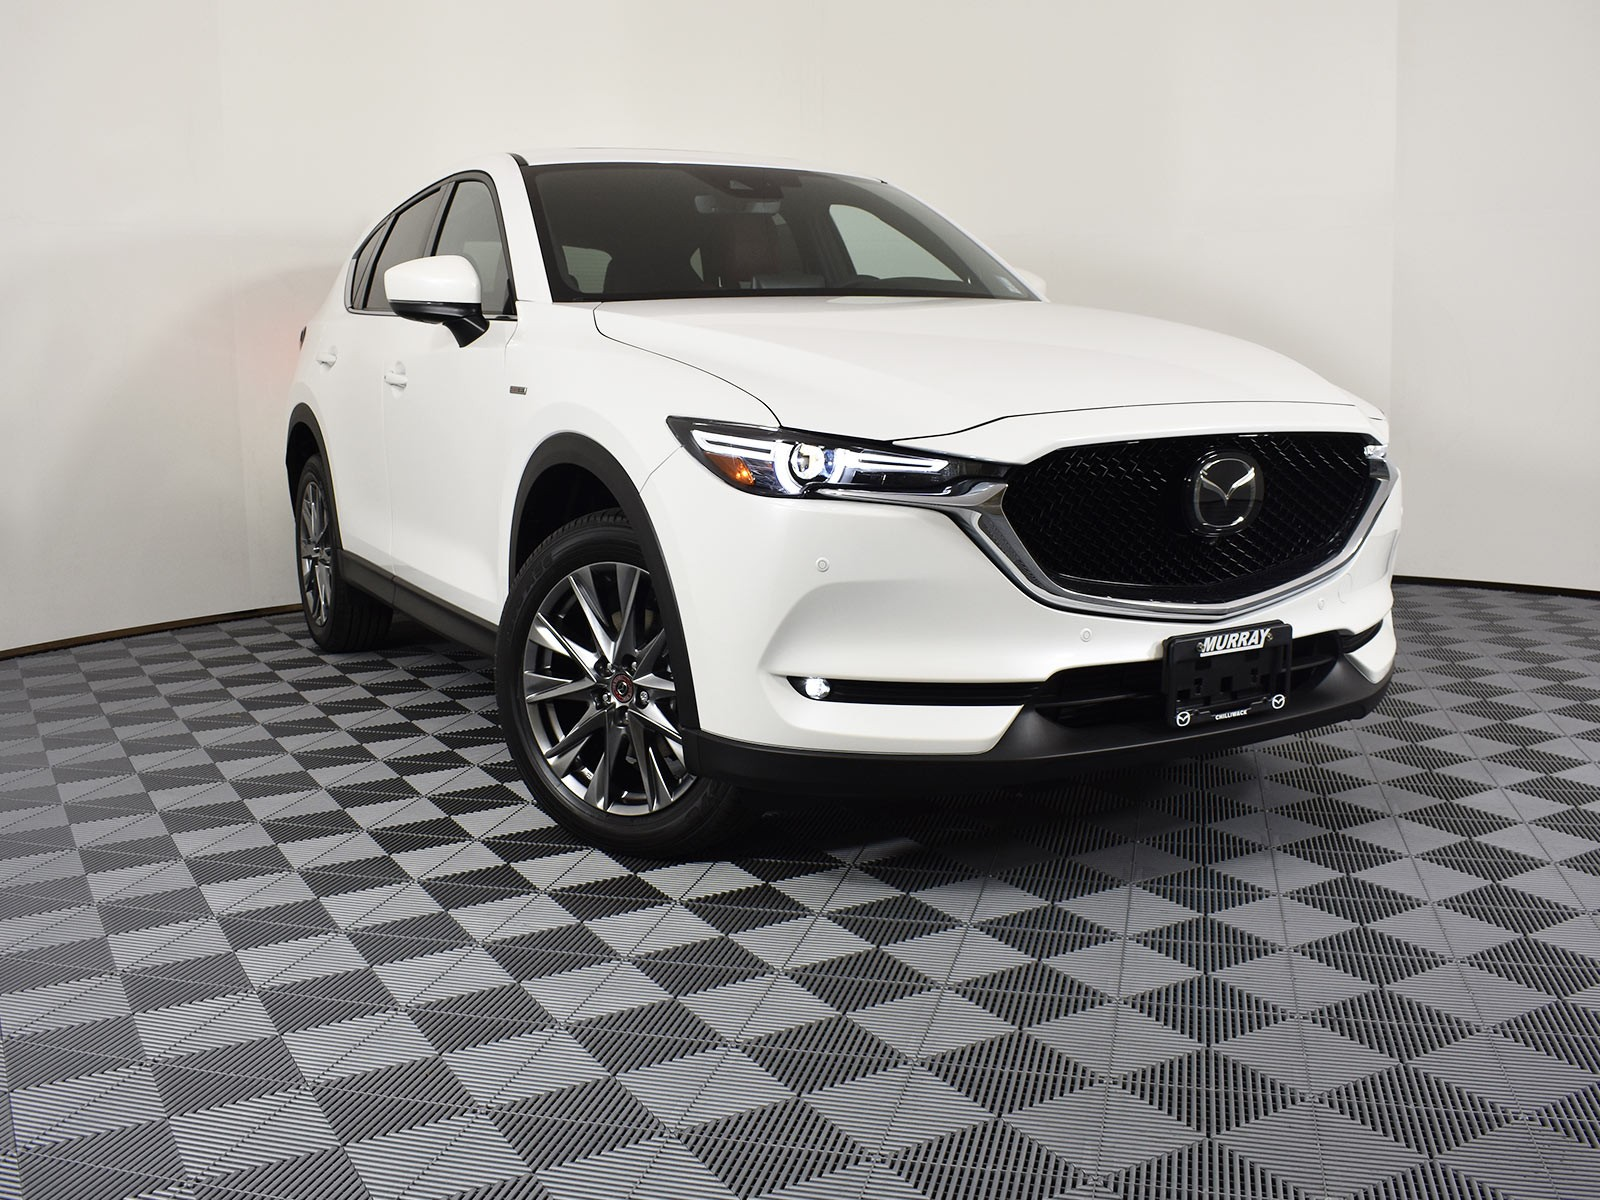 2021 Mazda CX-5 100th Anniversary Edition - 4km